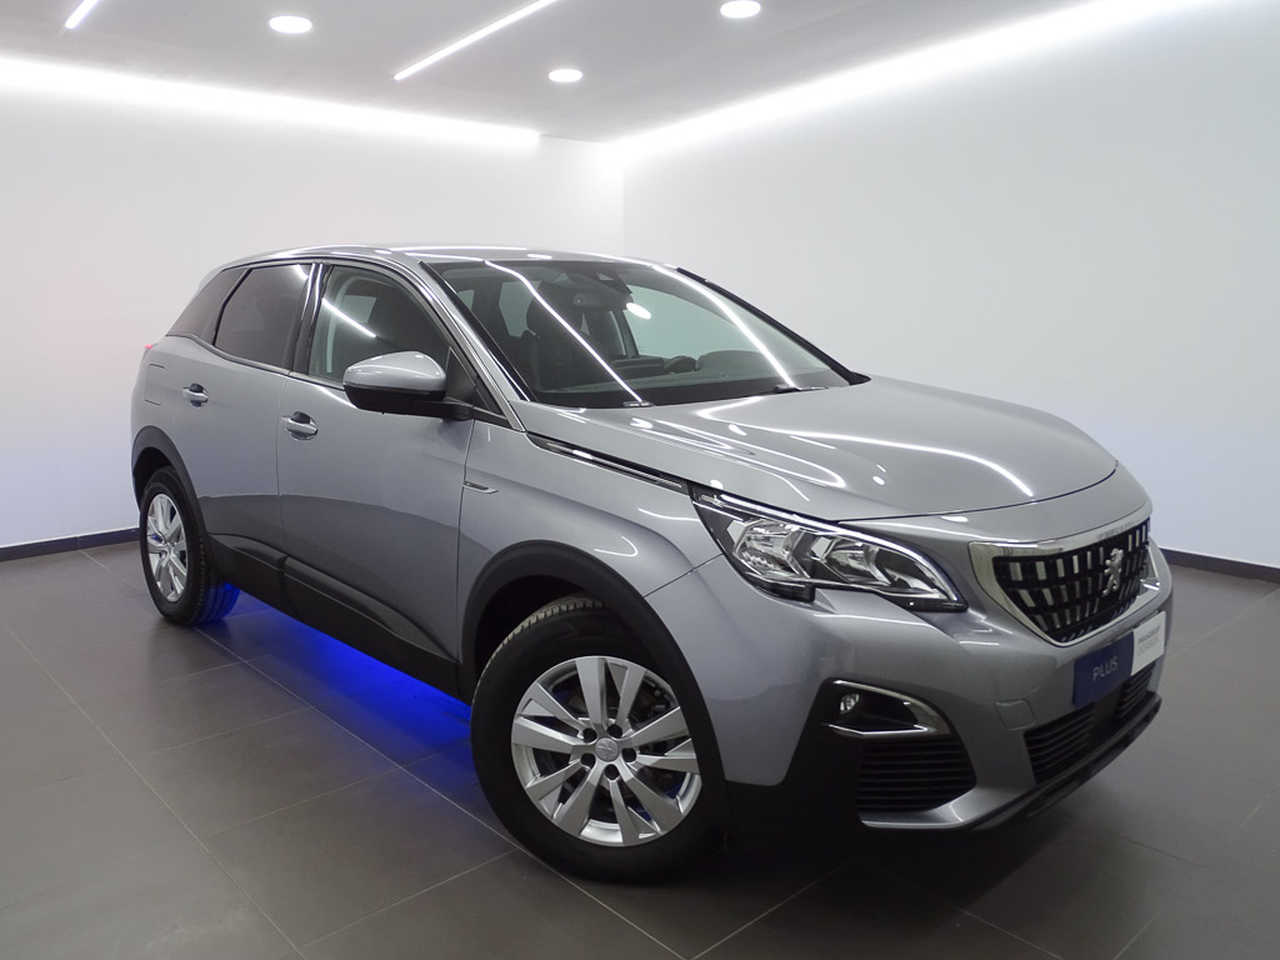 Peugeot 3008 ACTIVE 1.6 BLUEHDI 130 S&S EAT8